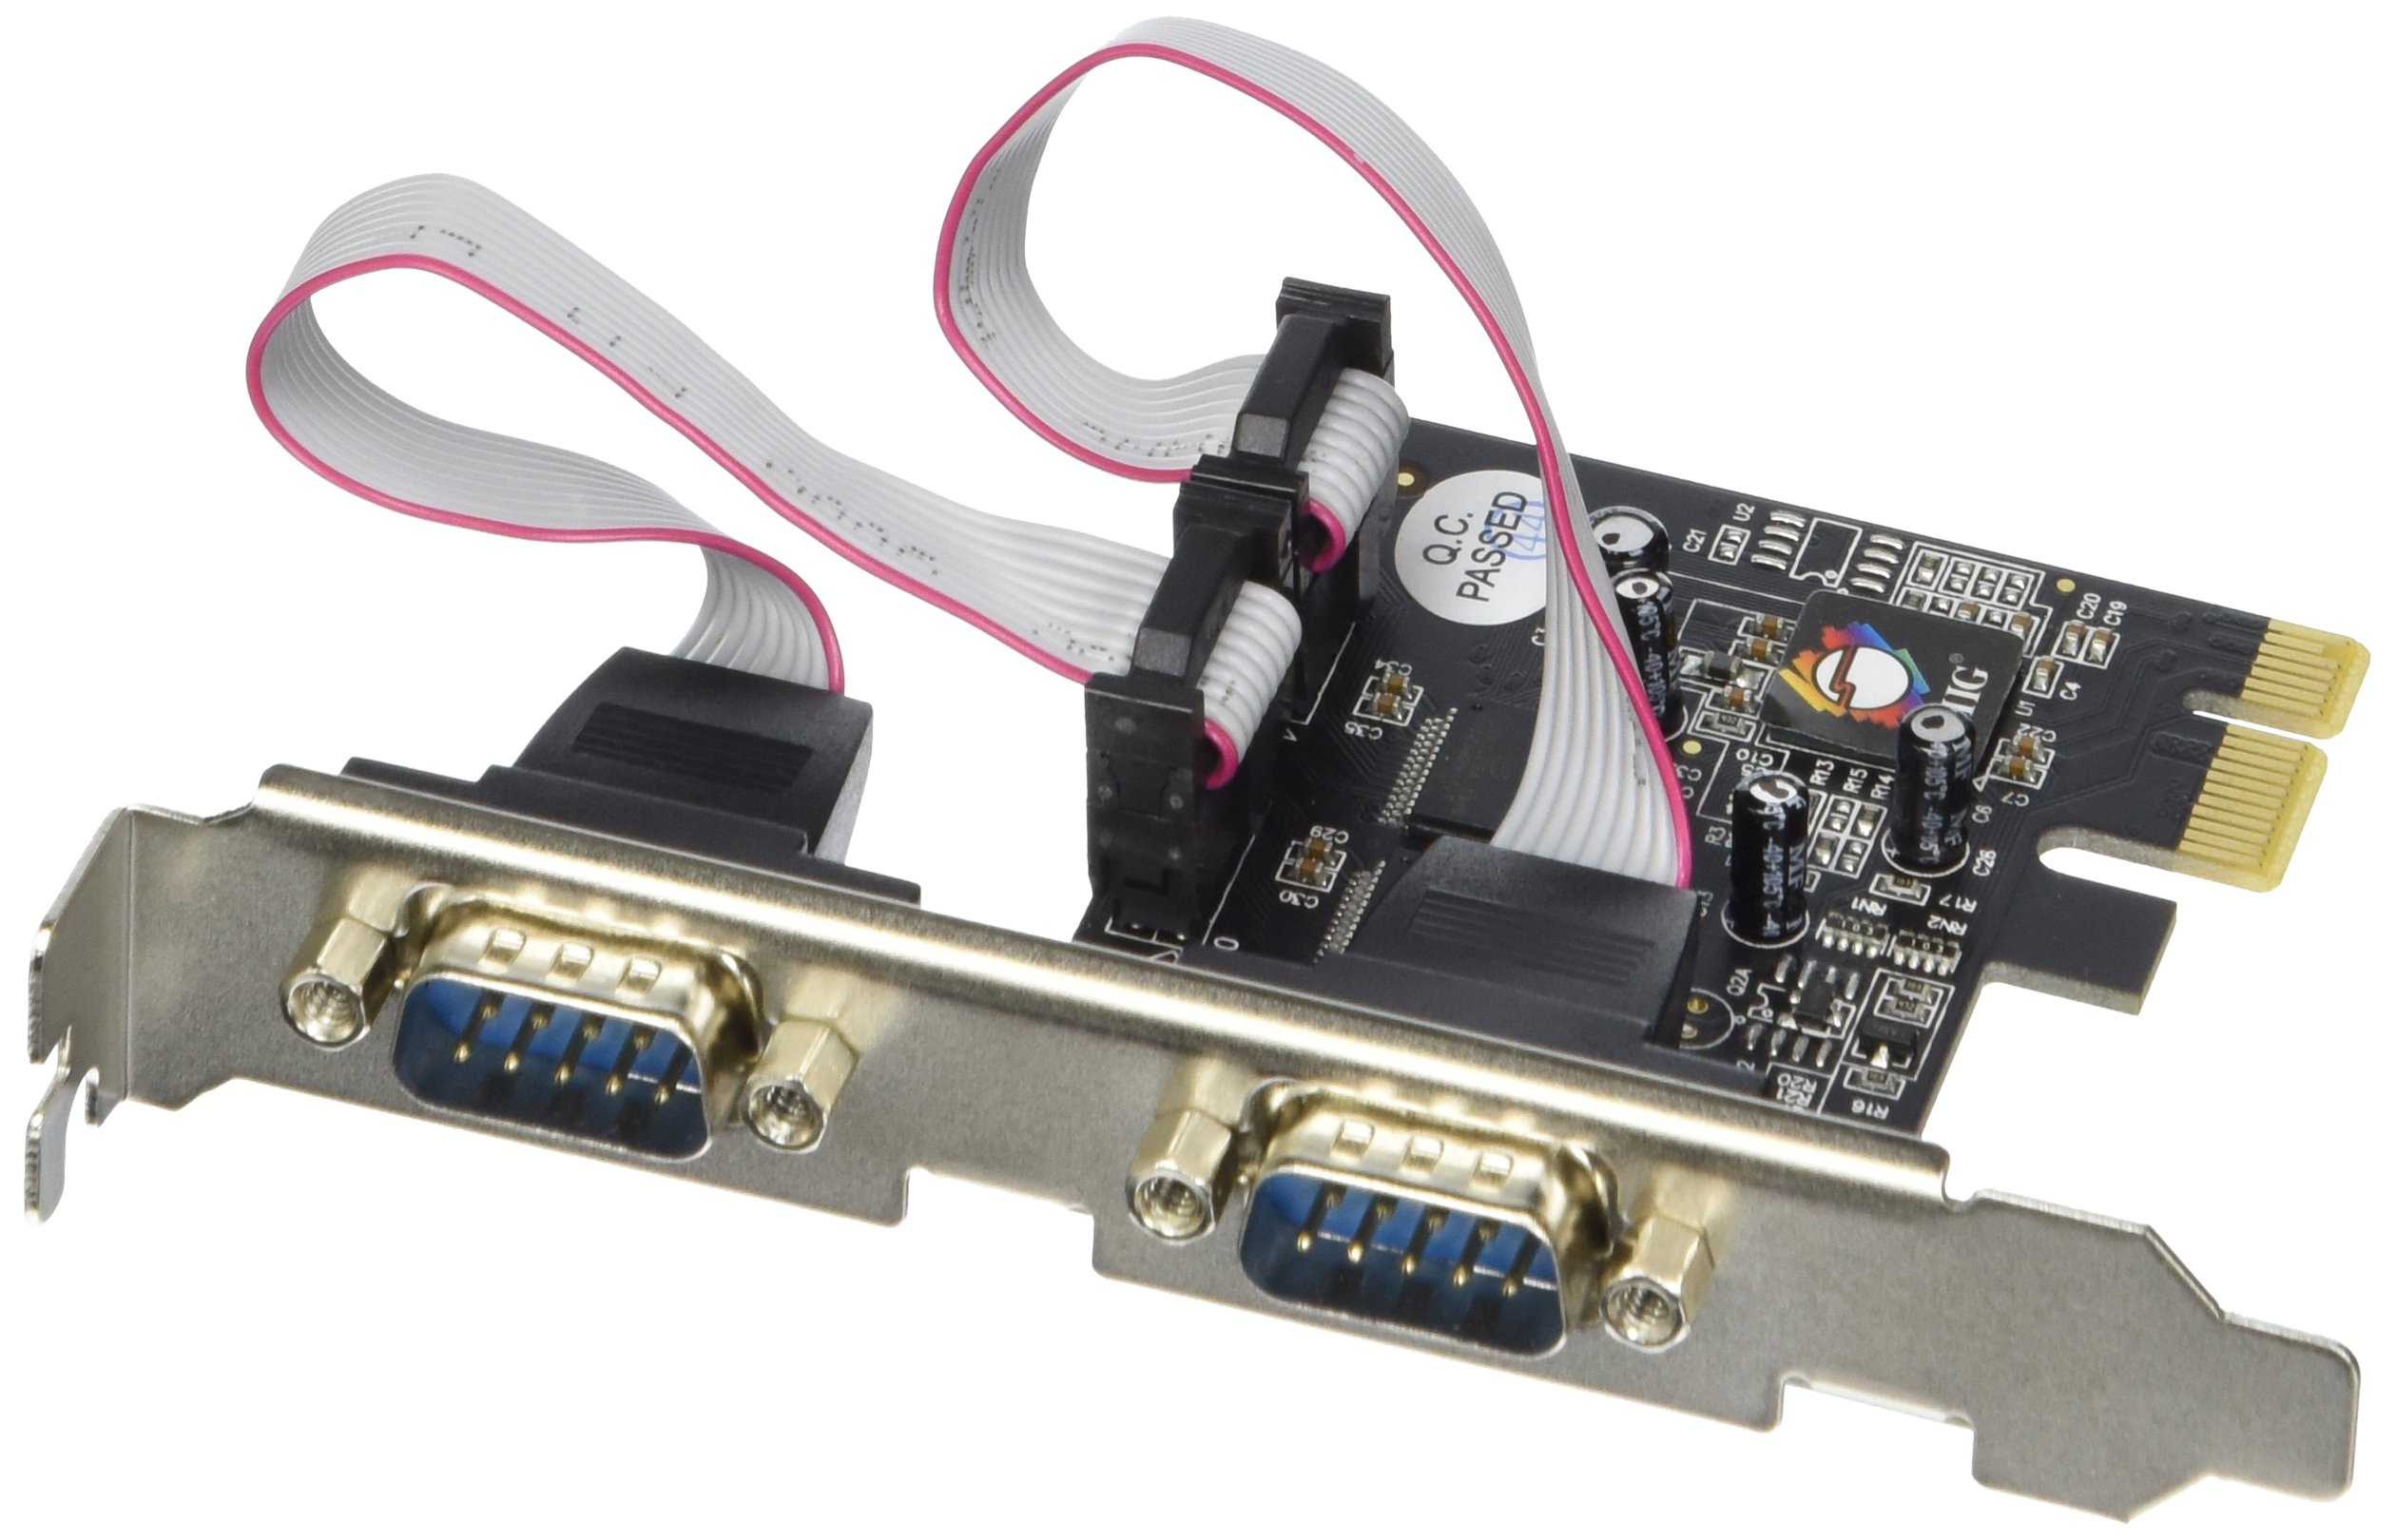 SIIG 2-Port RS232 Serial PCIe with 16950 UART (JJ-E02111-S1) by SIIG